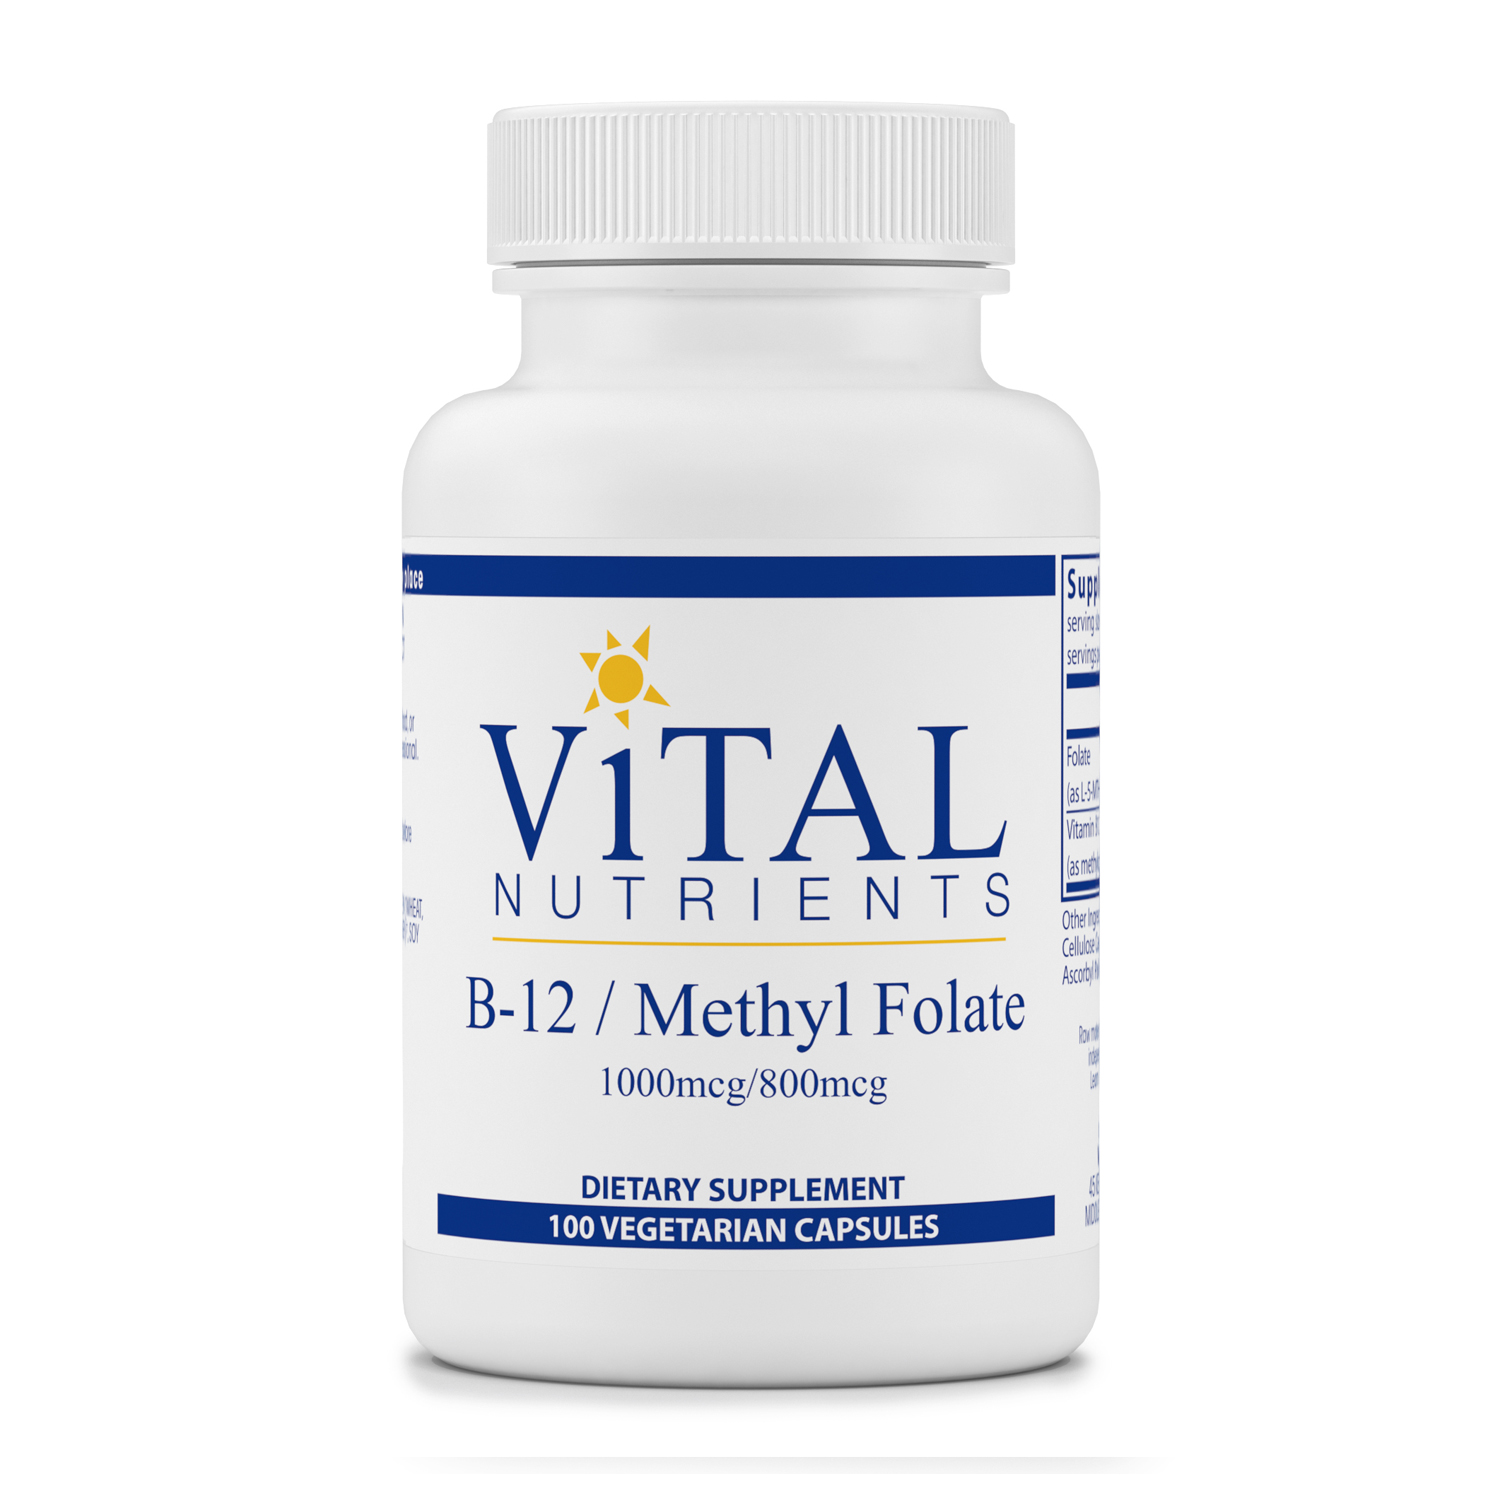 B12 Methyl Folate